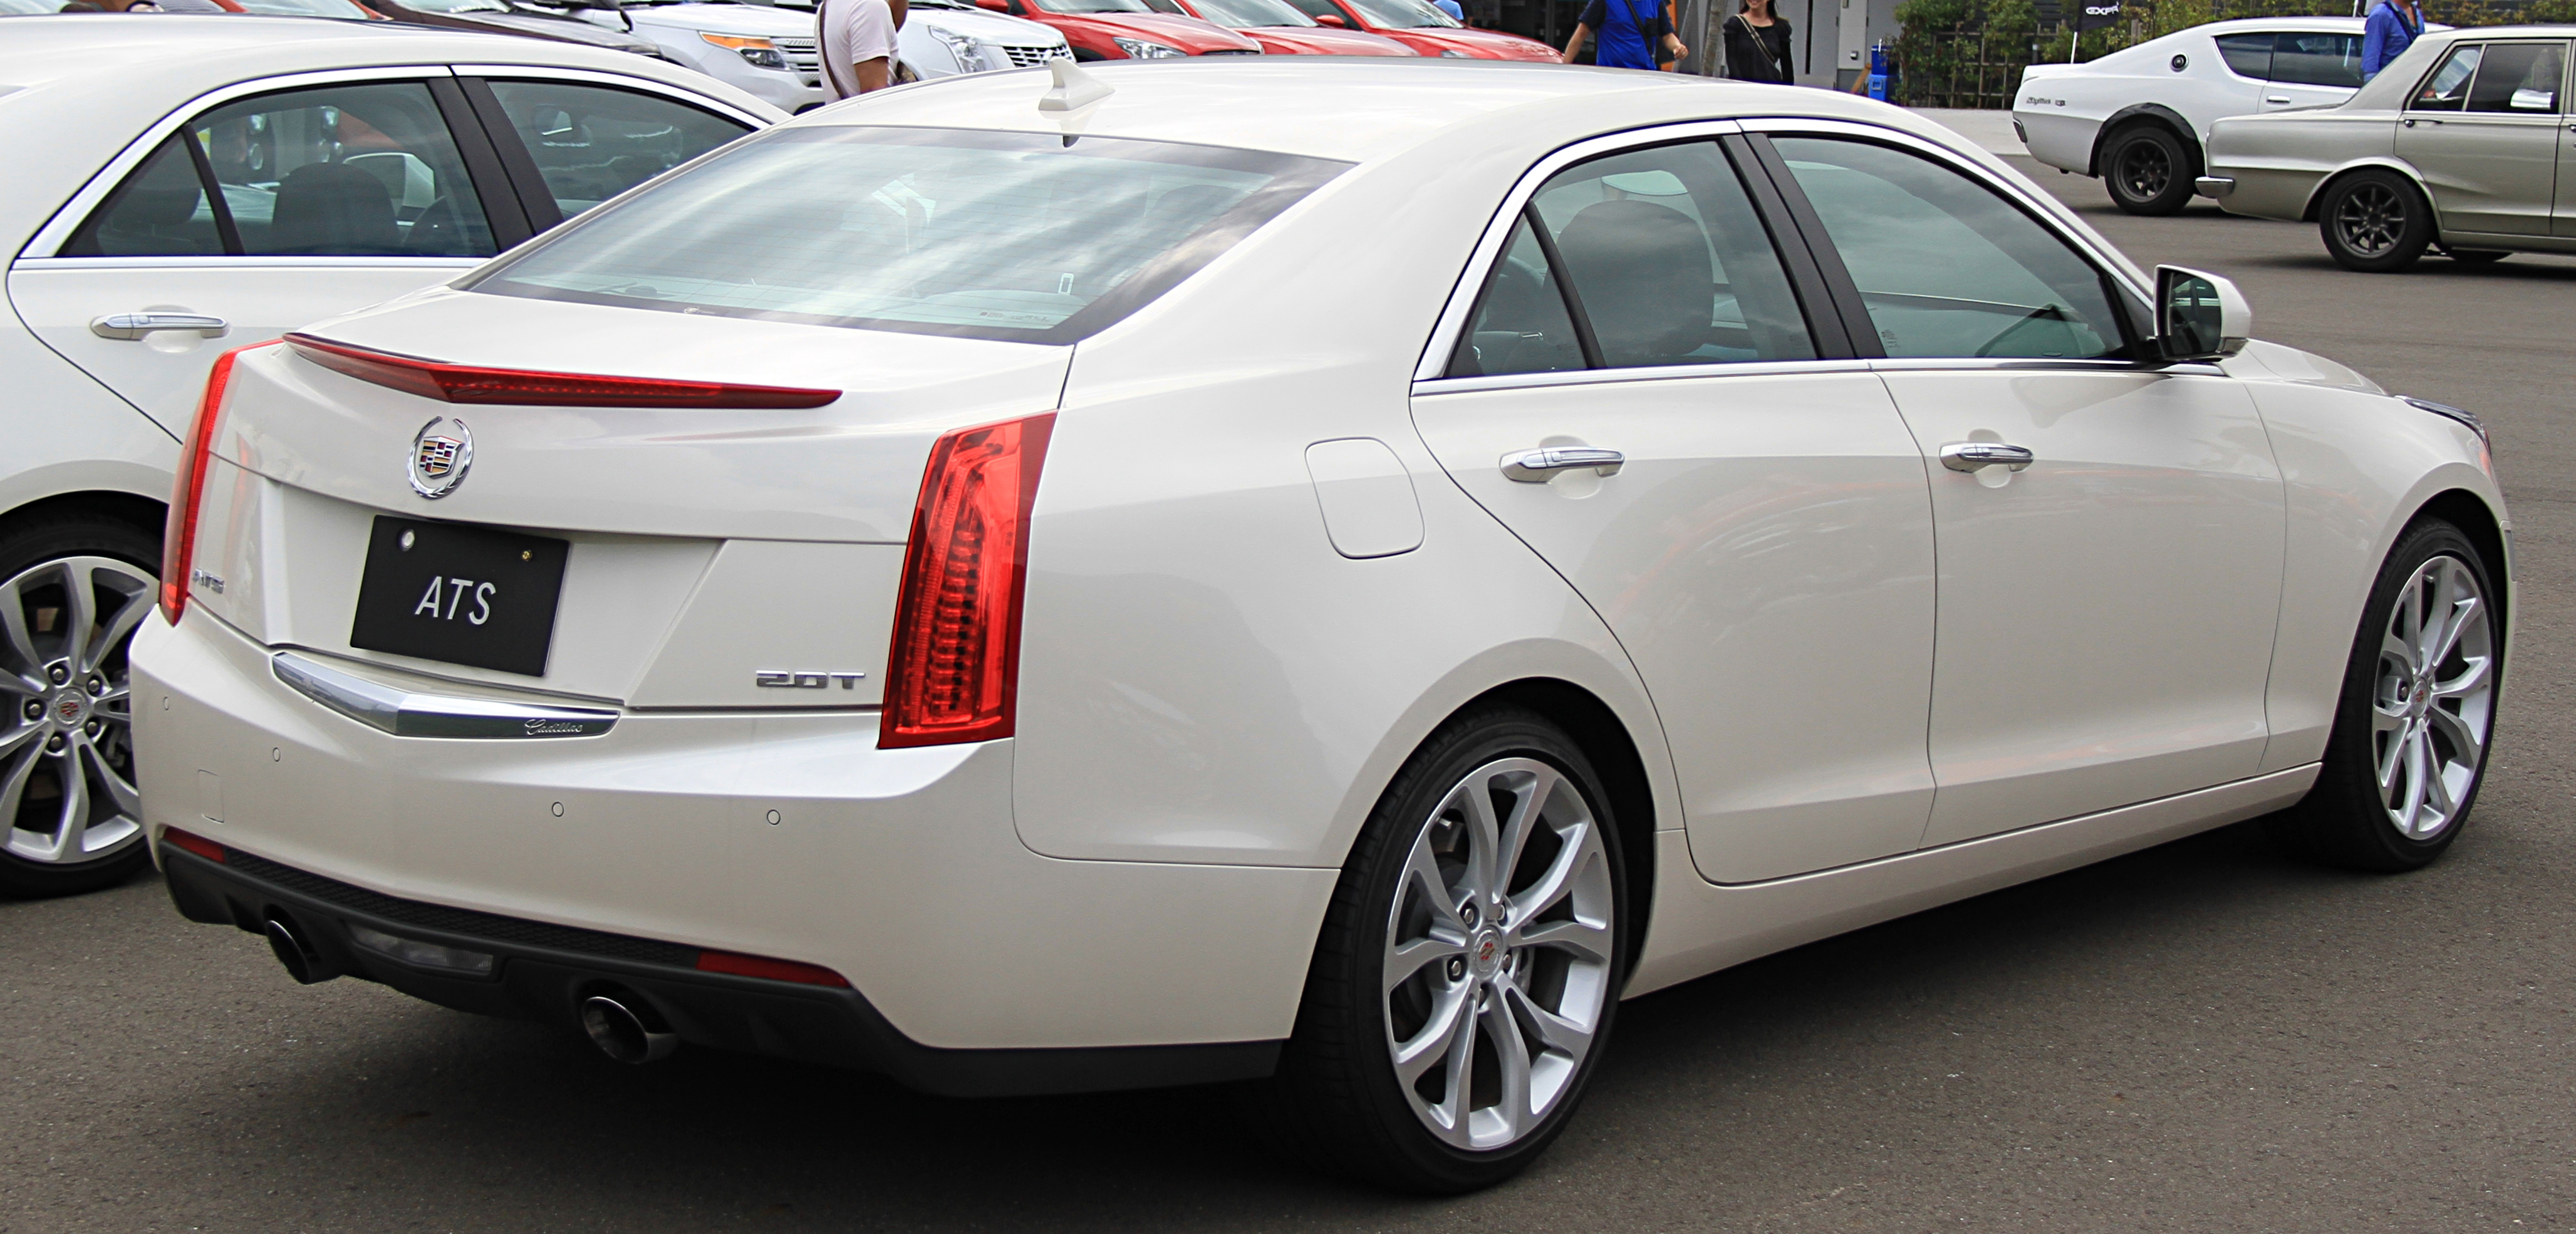 File Cadillac Ats Rear View Jpg Wikimedia Commons